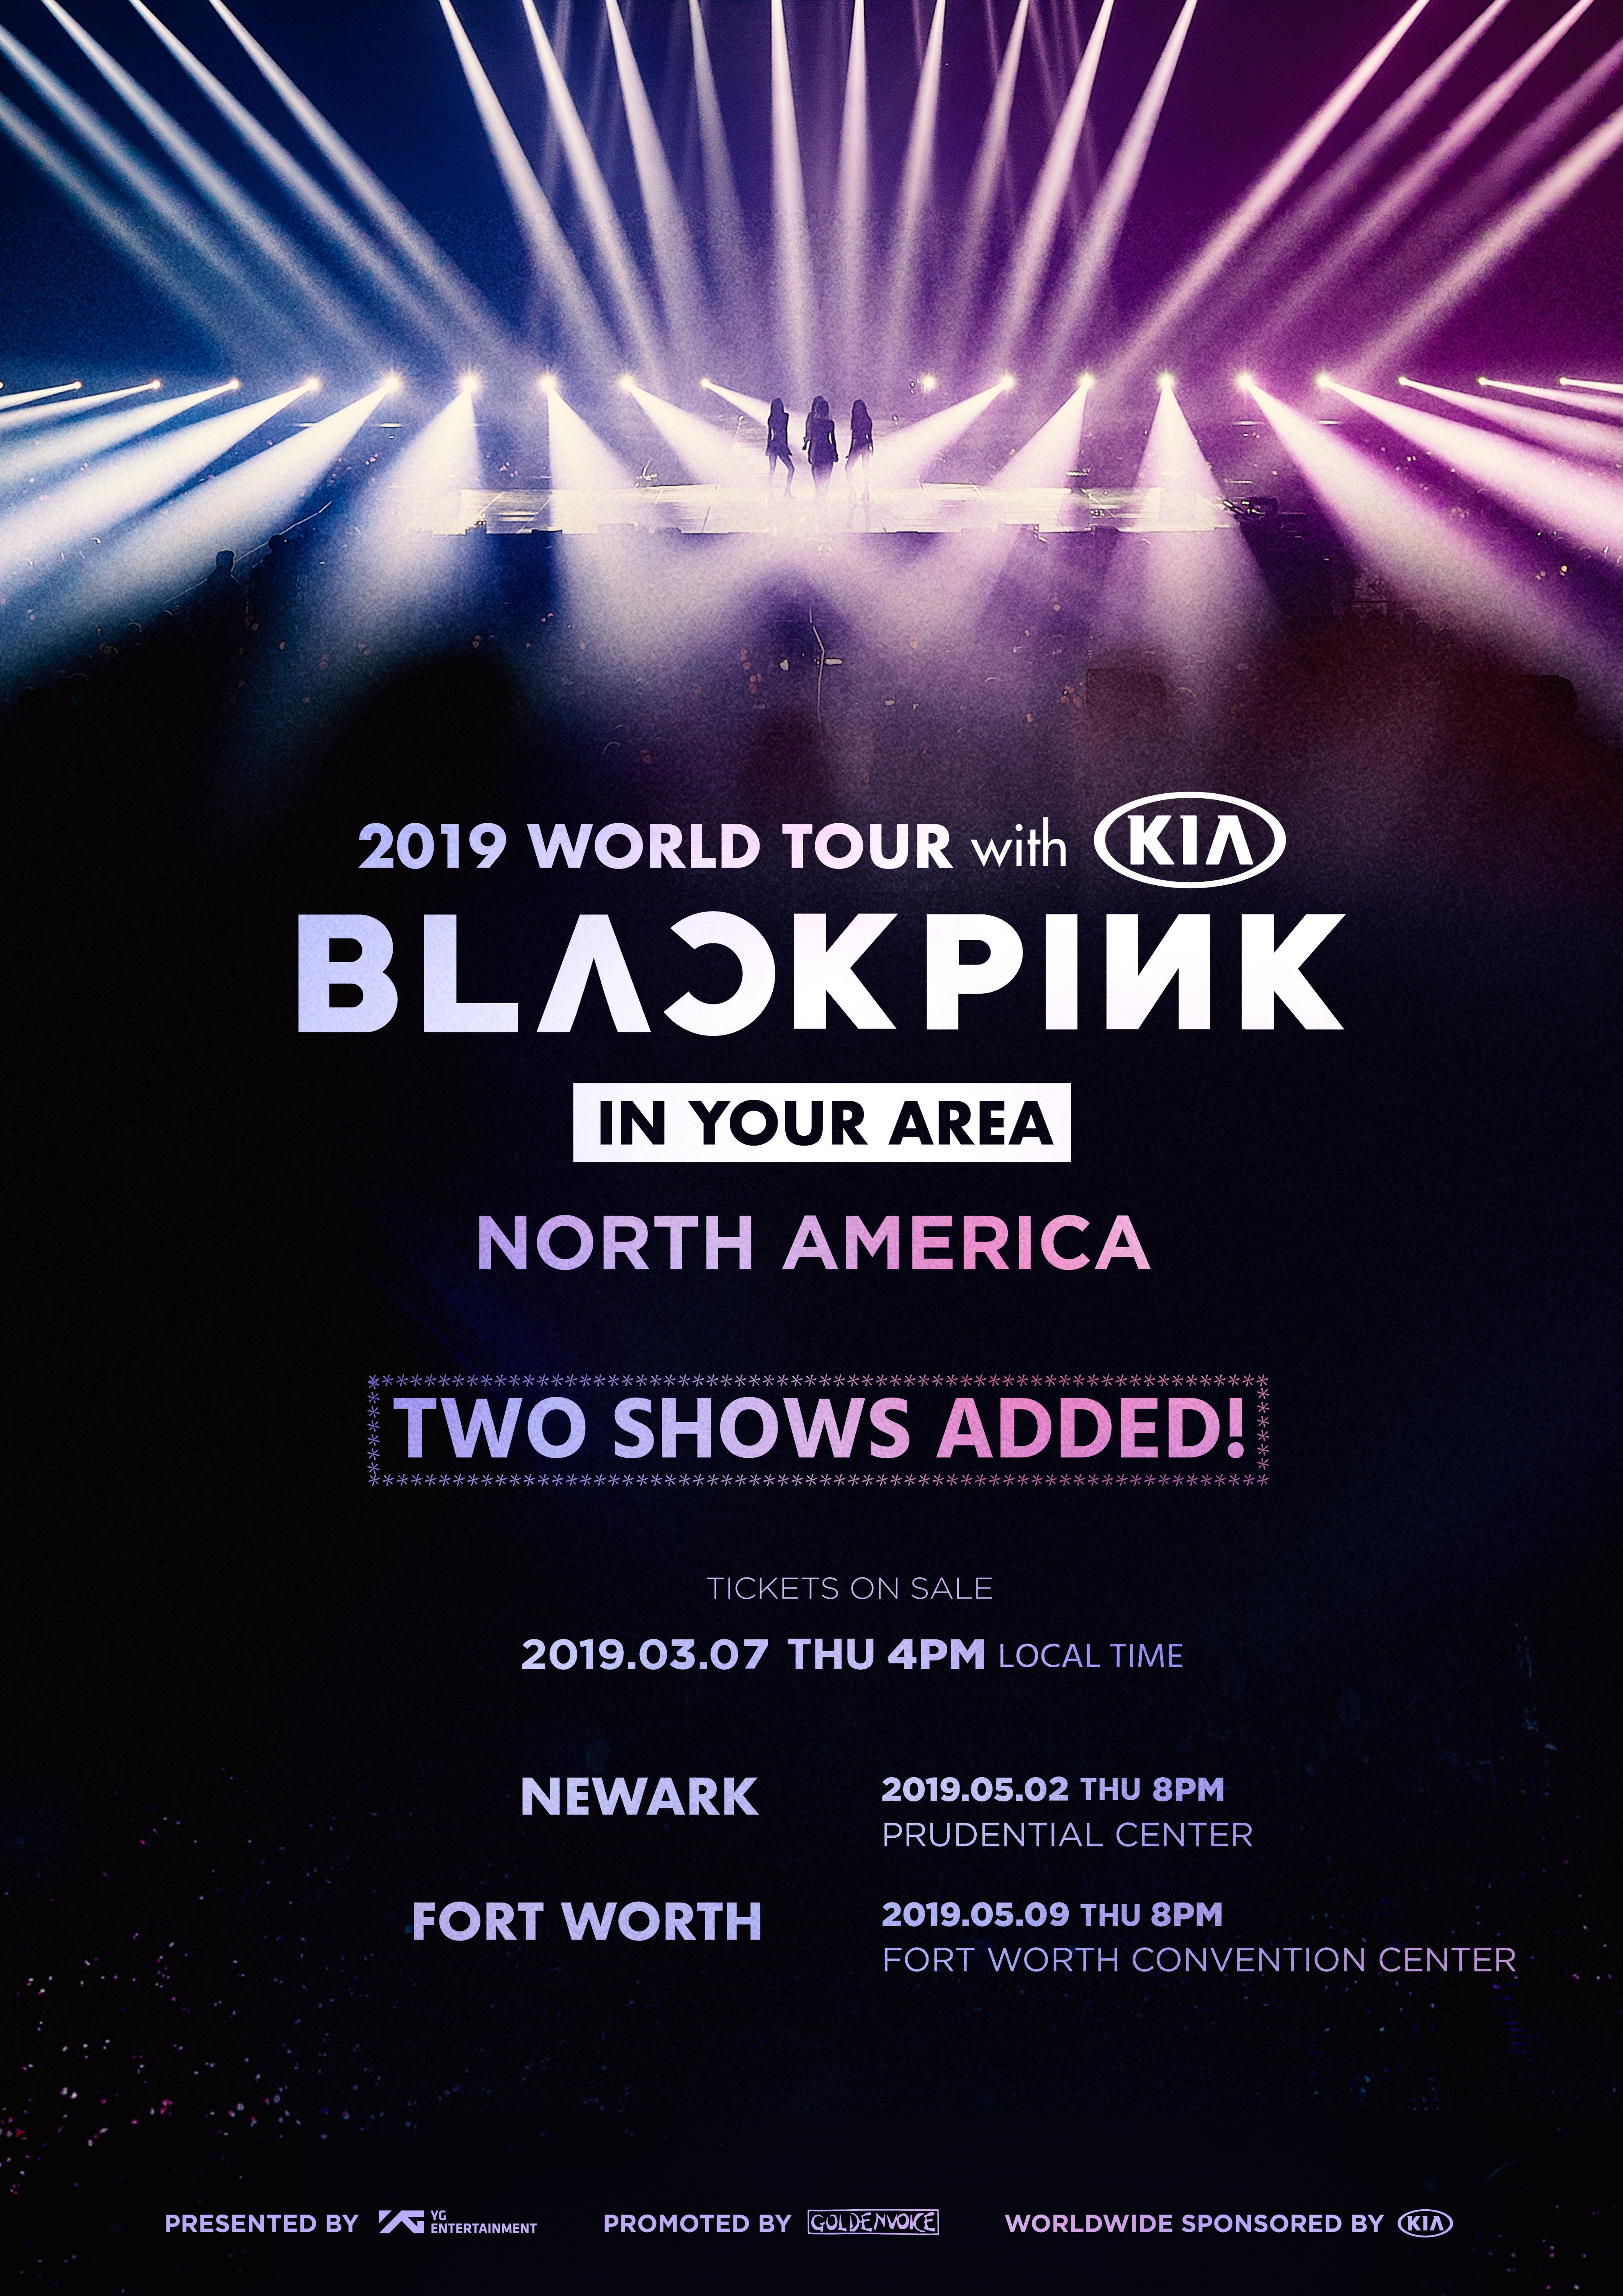 Blackpink Adds Two Shows For 2019 World Tour In North America